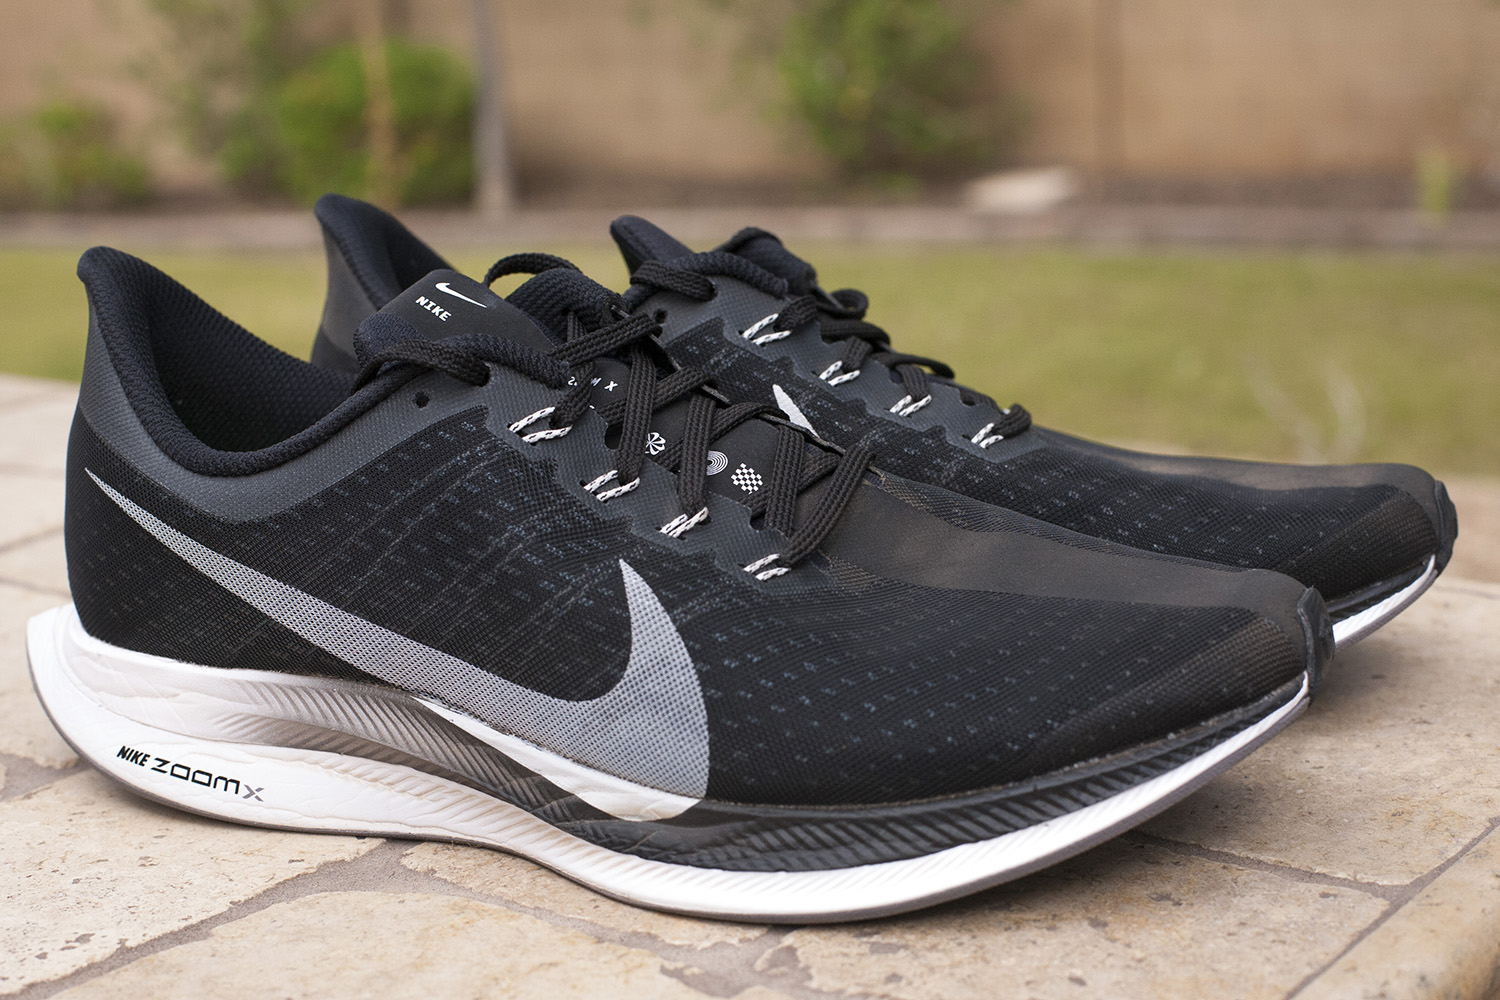 Road Trail Run  Nike Zoom Pegasus Turbo 120 Mile Road Test Review ... 443e12bfd